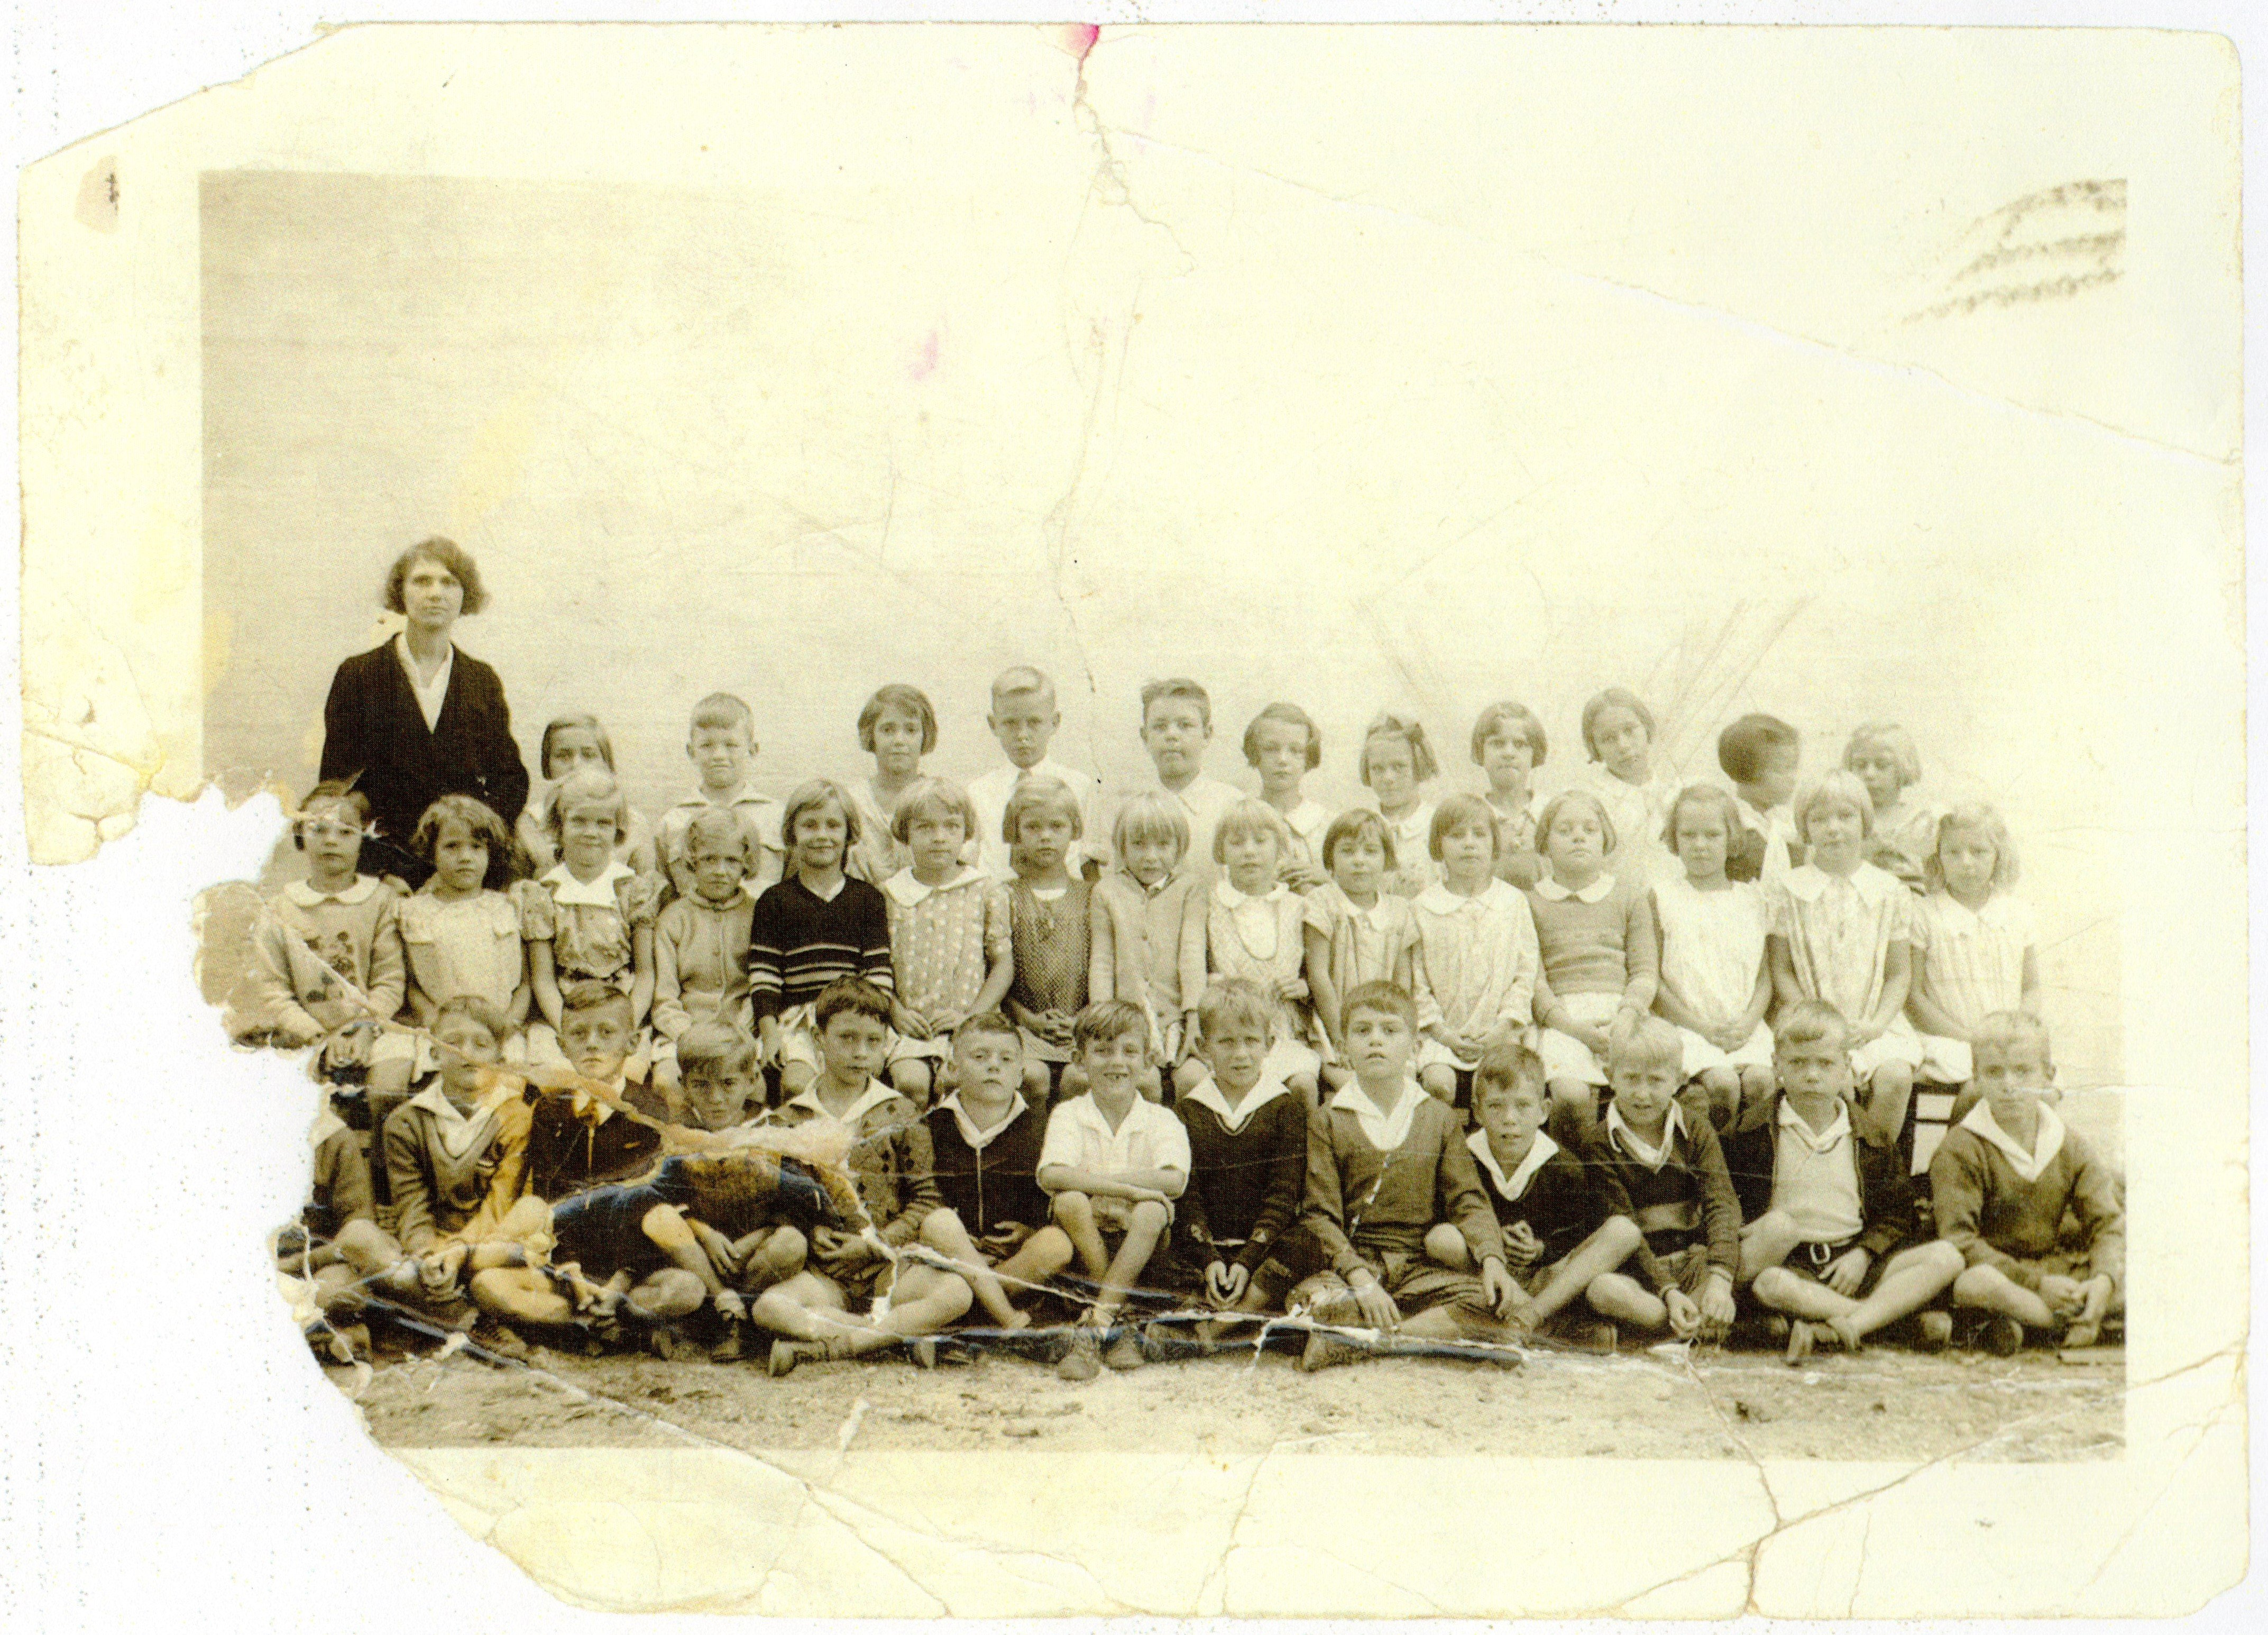 An elementary grade-level class of Armor Park School from 1934-1935. The school, which was administered by the U.S. Navy at the cost of $2.00/year per student, included a full suite of athletic facilities, including baseball and football fields.